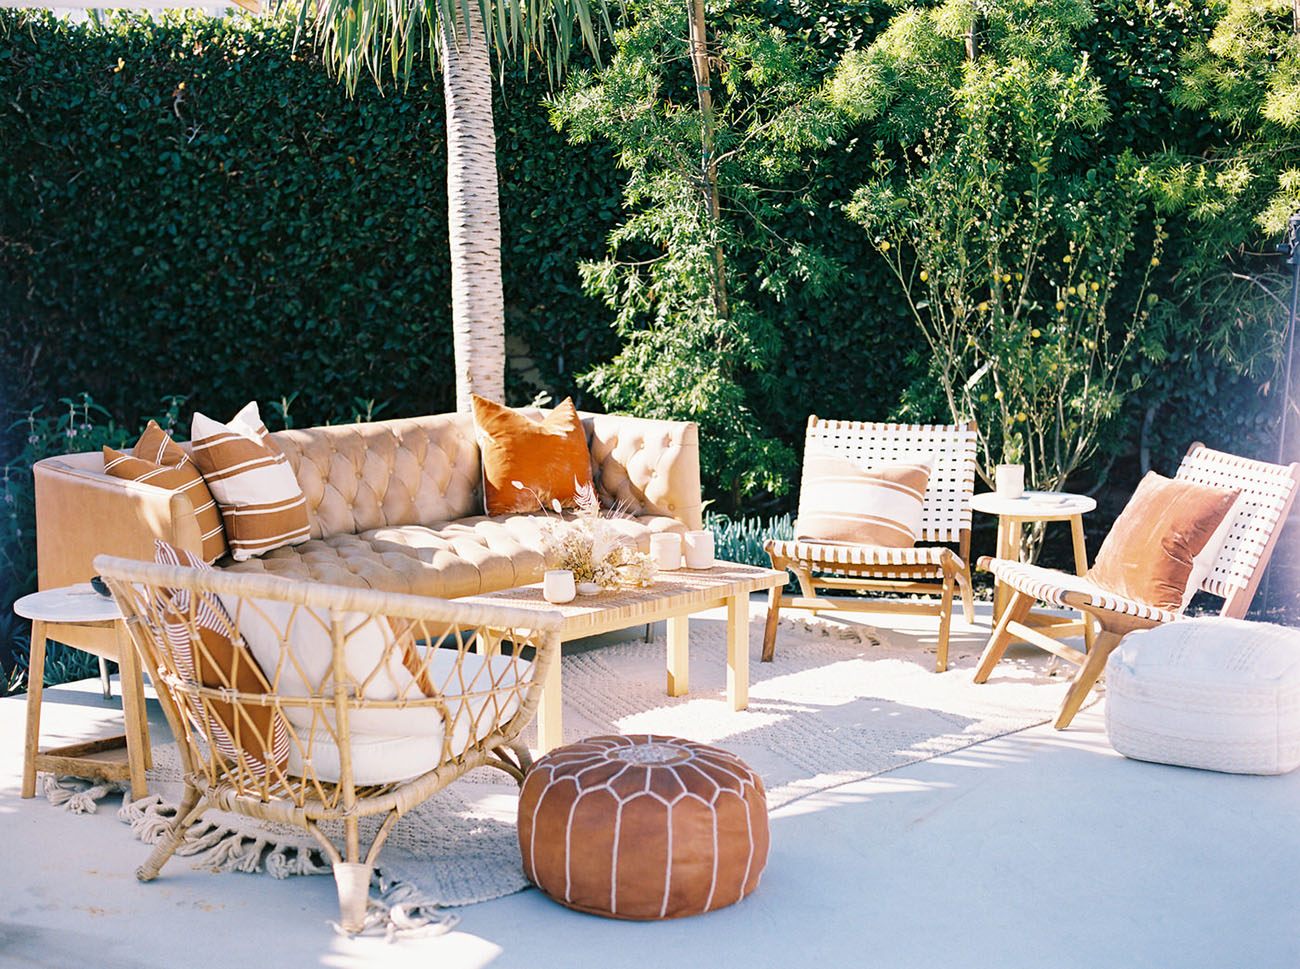 The lounge was a boho chic one, in the colors of the shoot   orange, rust, neutrals and featured rattan and leather furniture